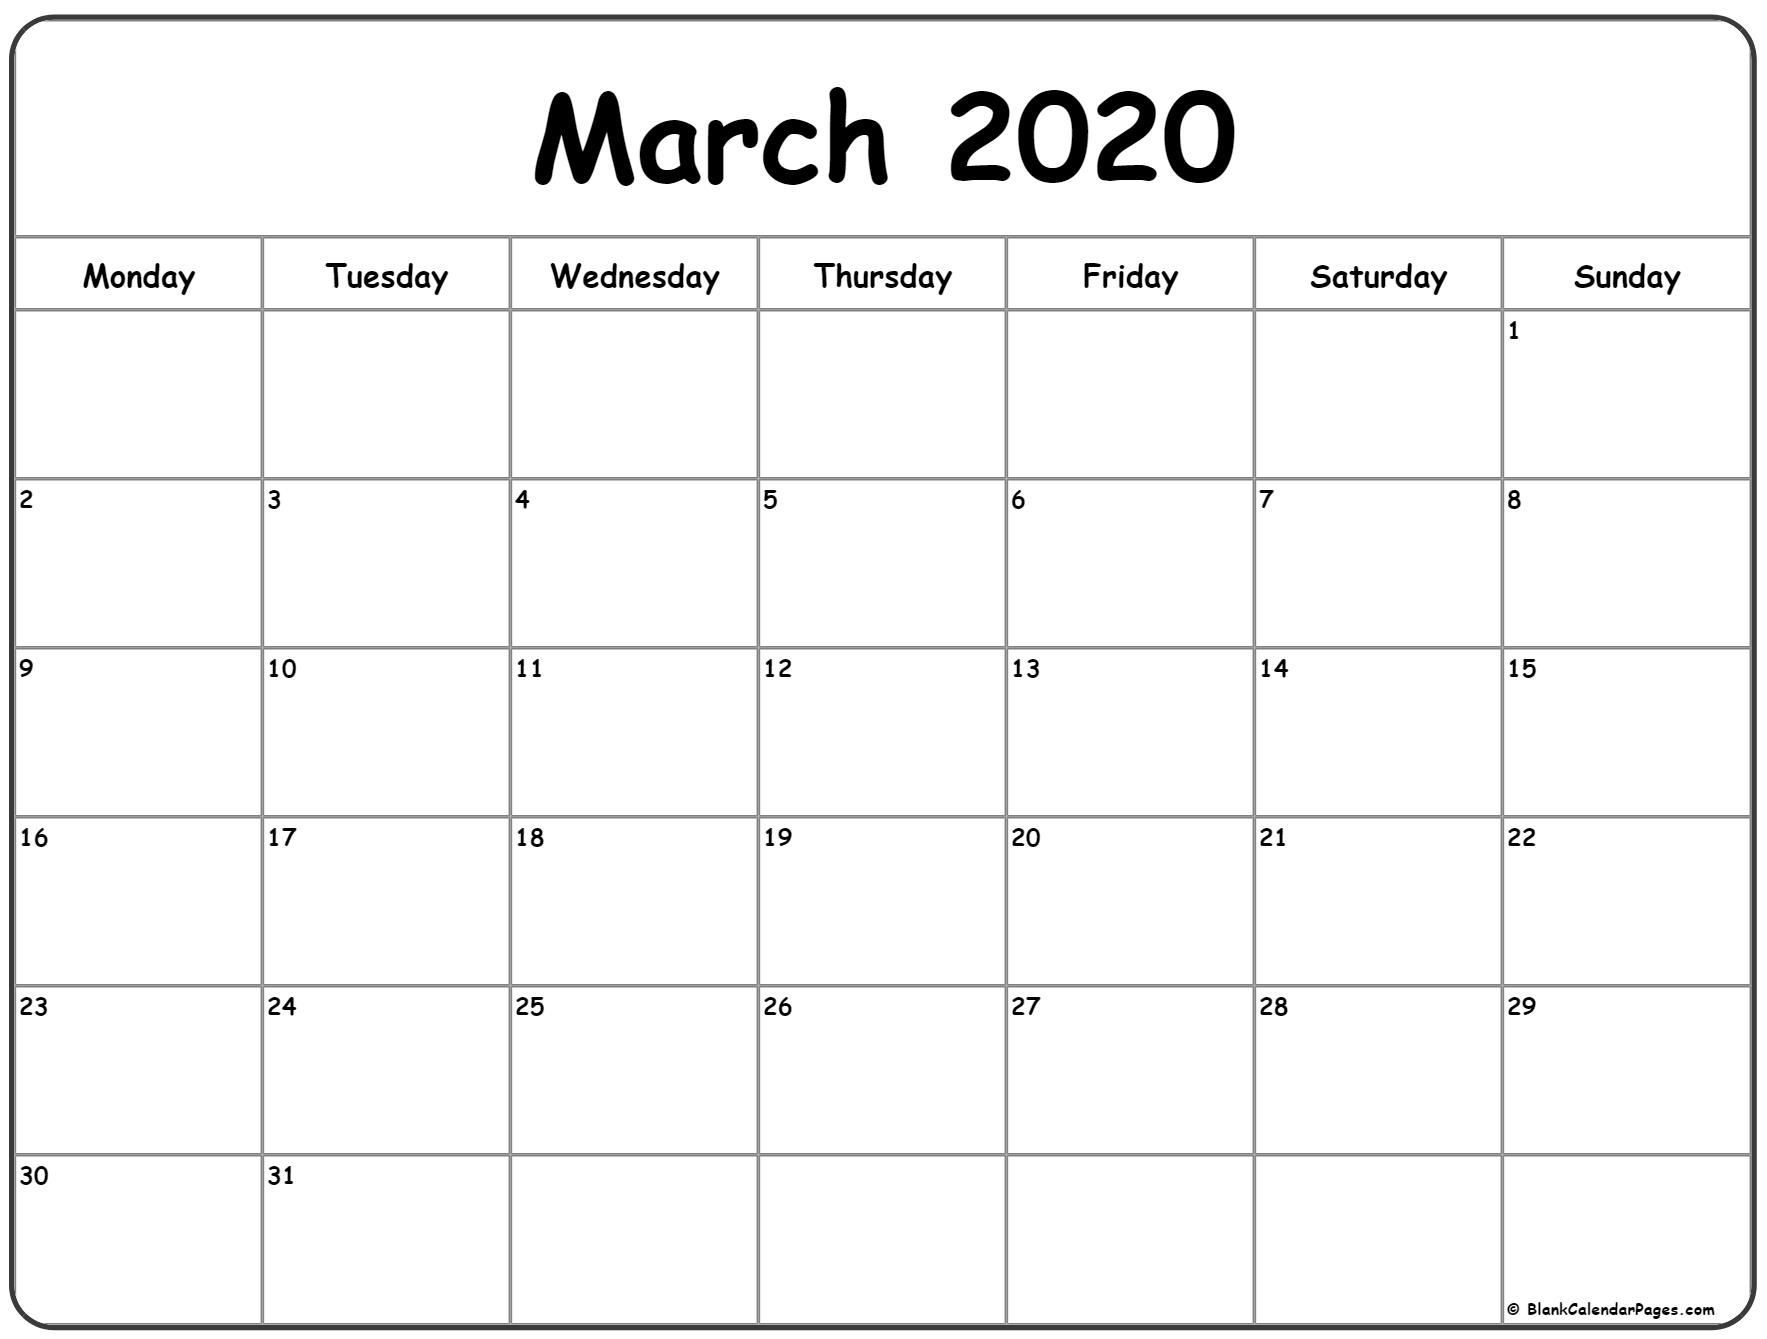 March 2020 Monday Calendar | Monday To Sunday | August